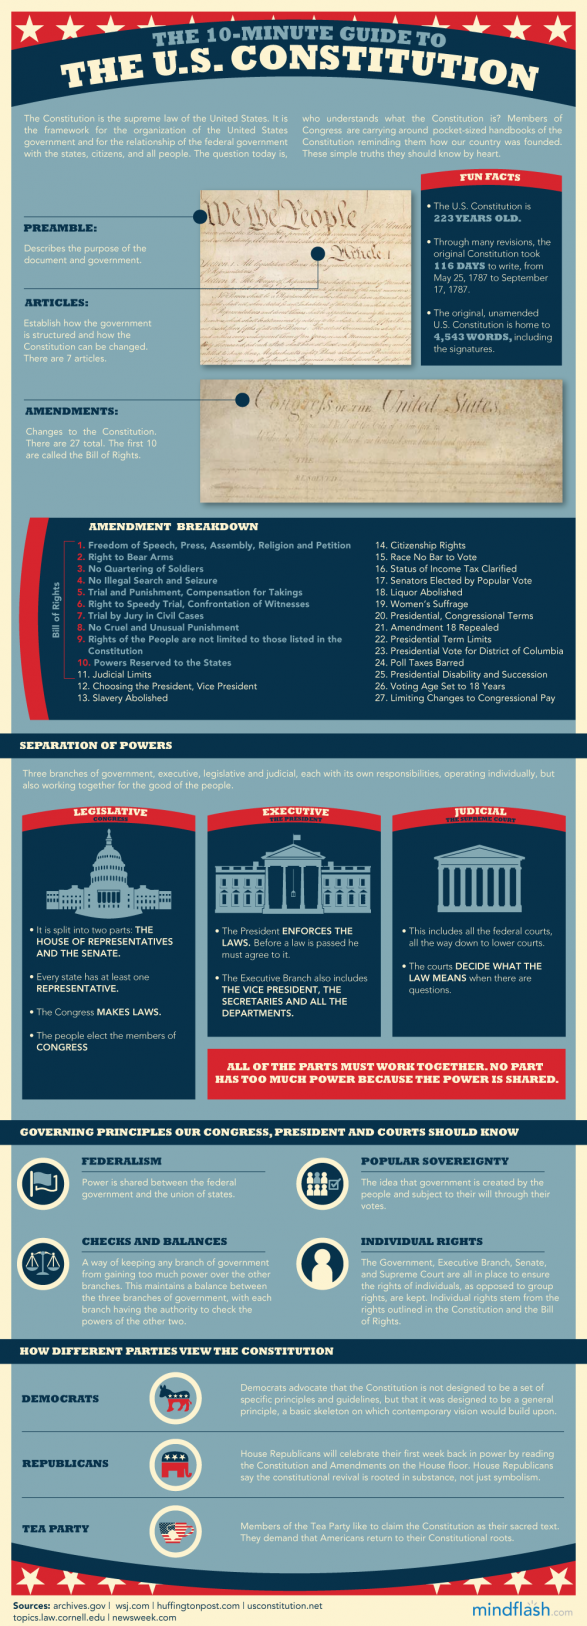 The 10-Minute Guide To The U.S. Constitution